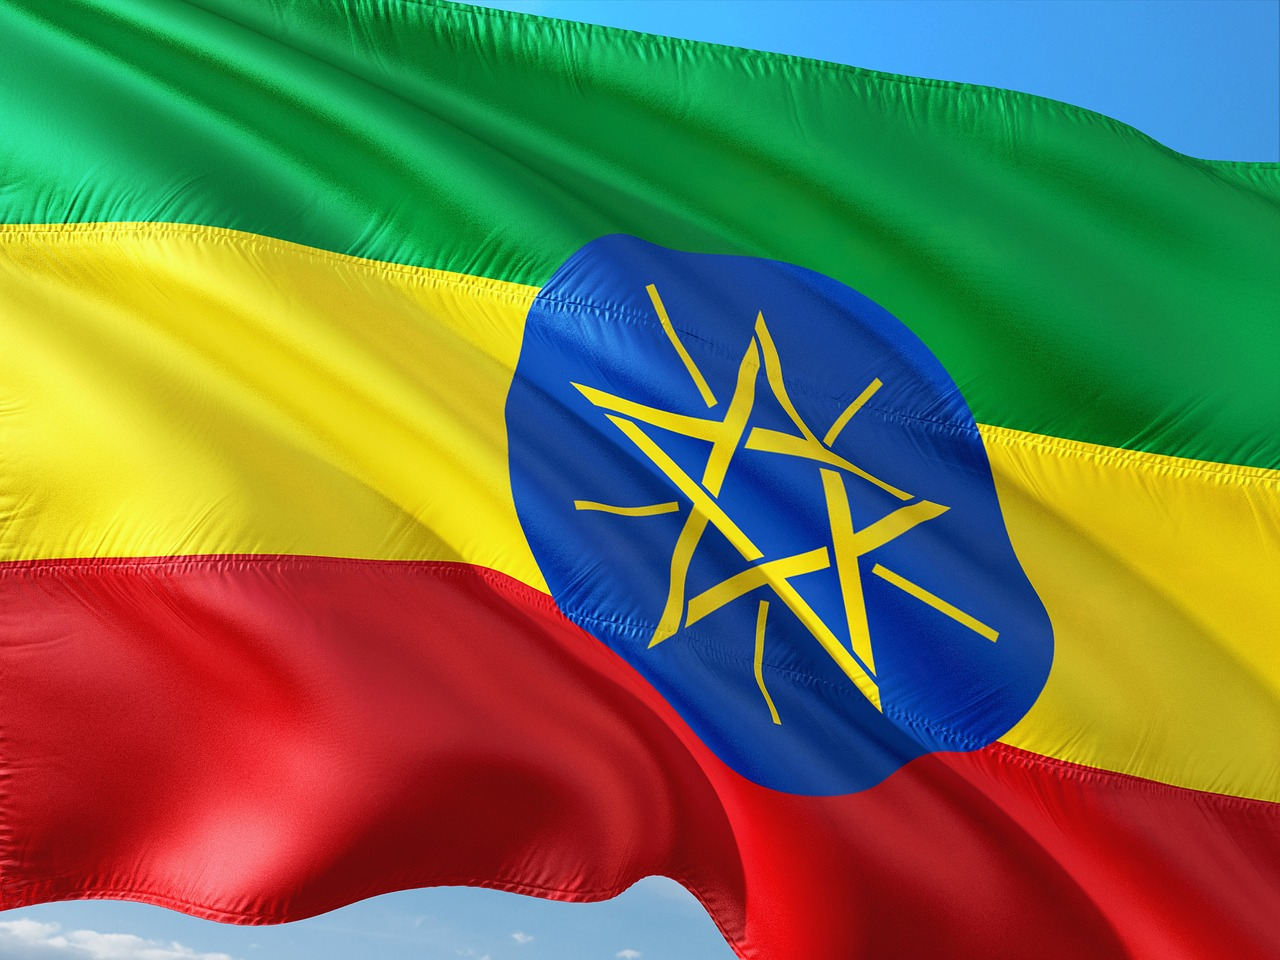 UN officials urge halt to gender-based violence in Tigray region of Ethiopia